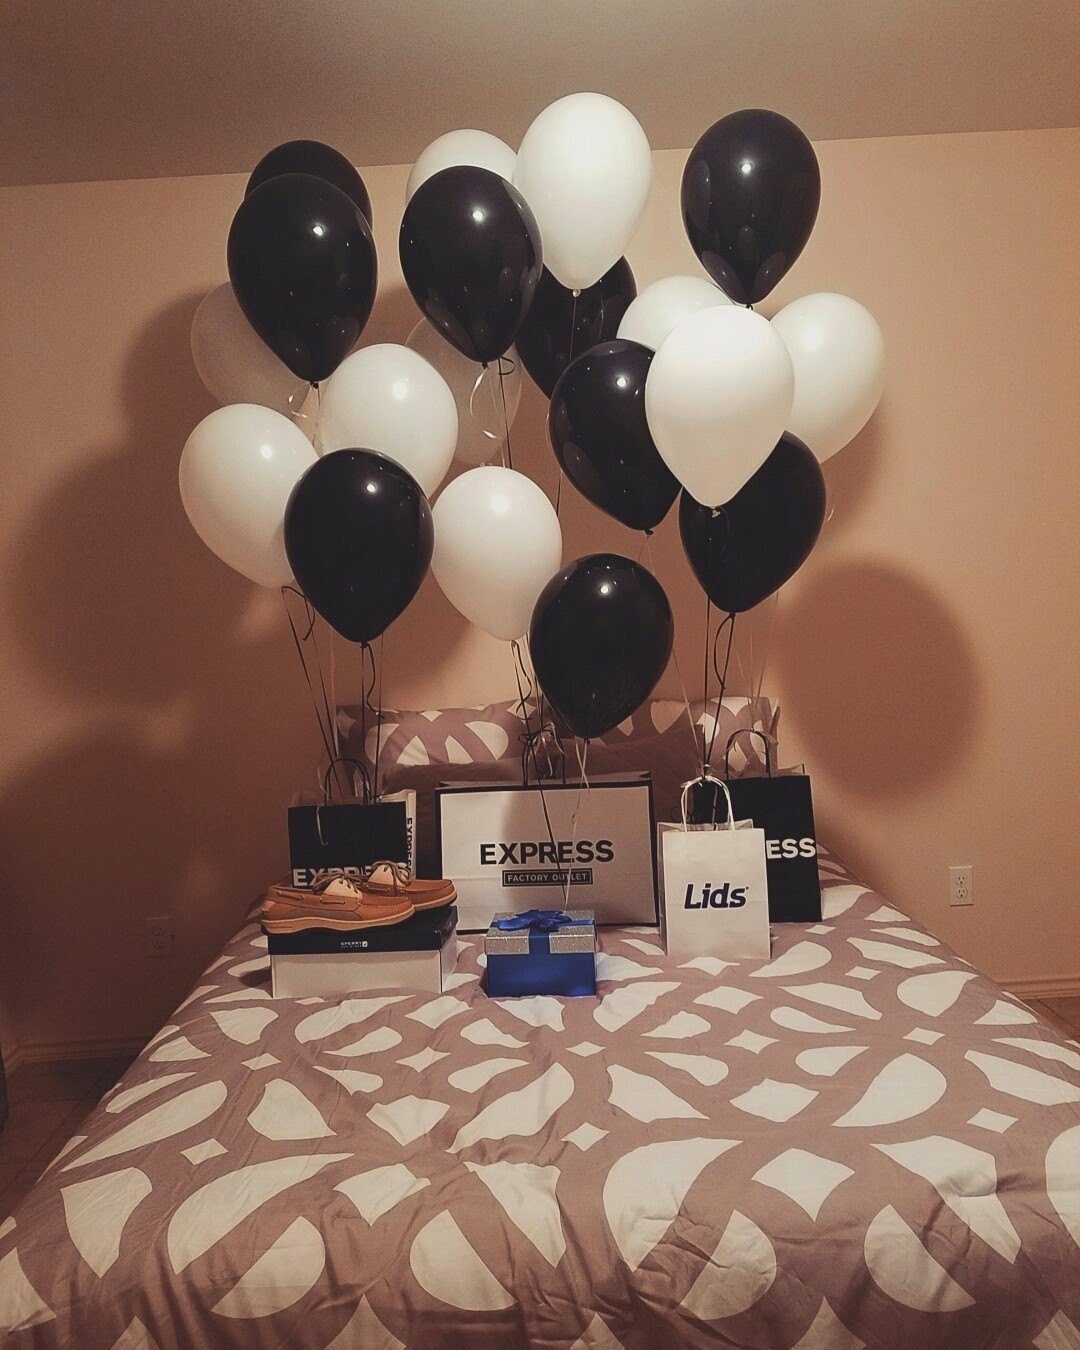 10 Fashionable Birthday Surprise Ideas For Girlfriend 2019